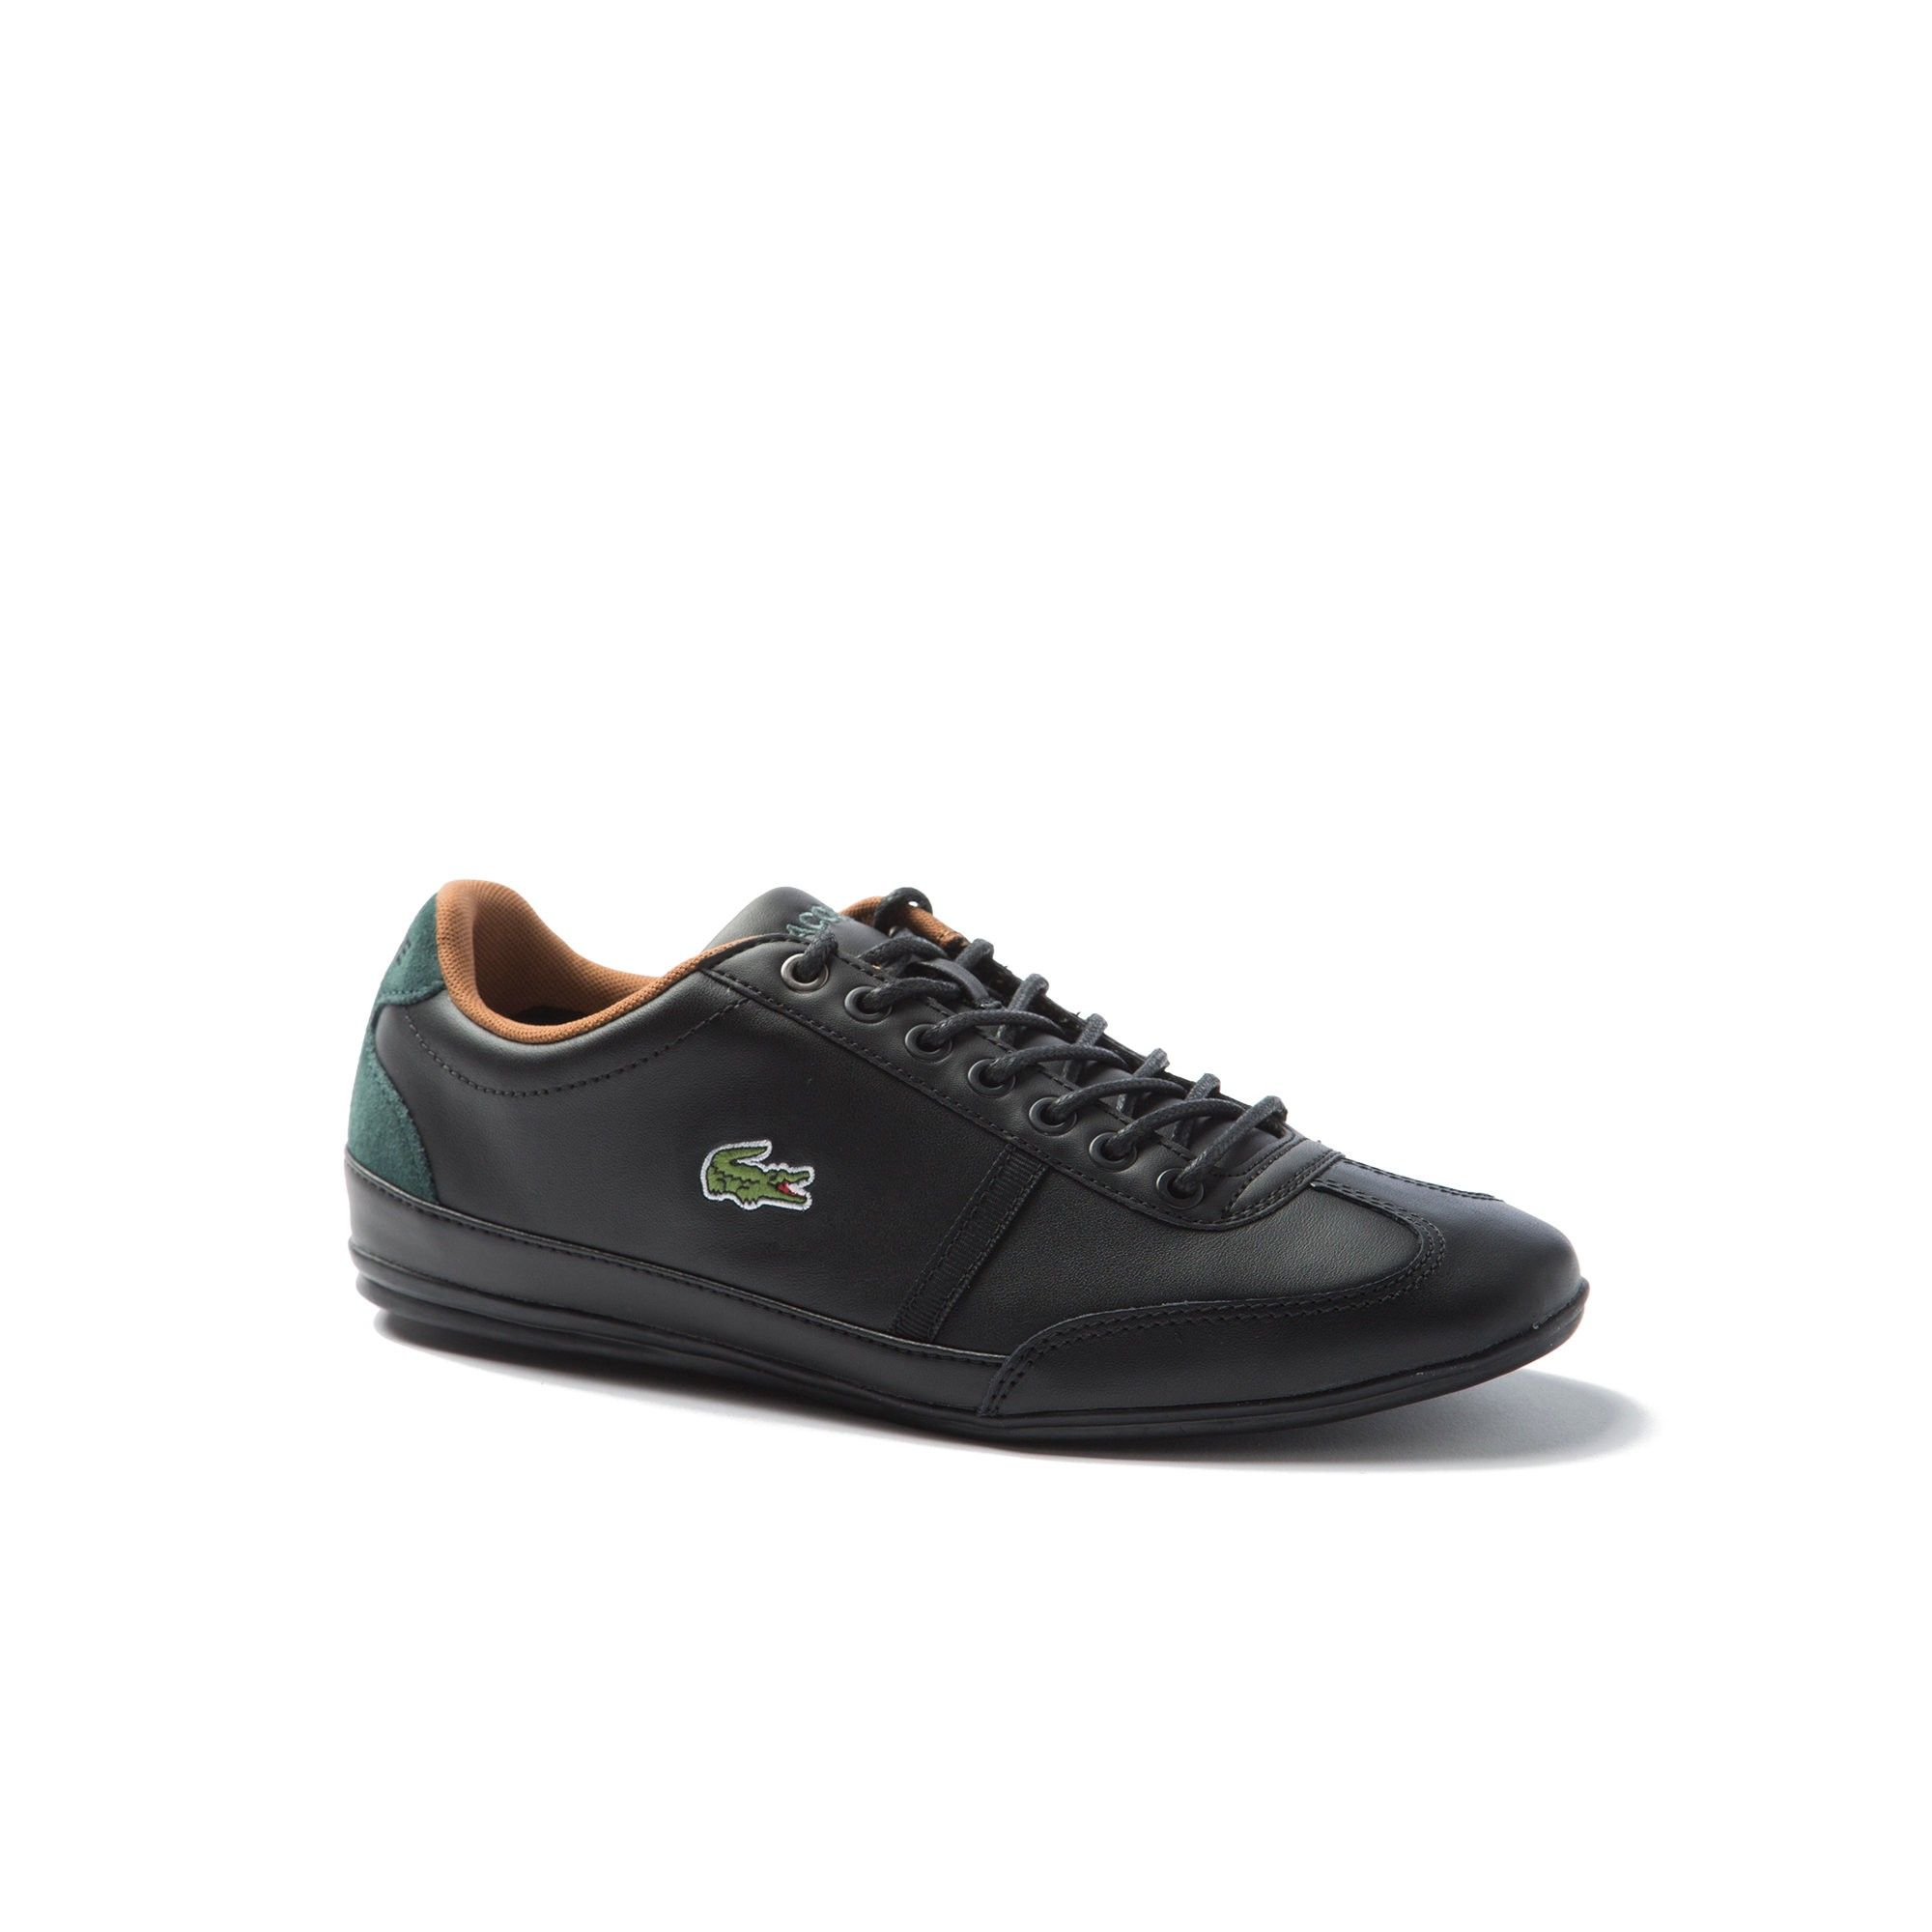 95359fd2eb2f LACOSTE Men's Misano Sport Leather Sneakers - black/black. #lacoste #shoes #